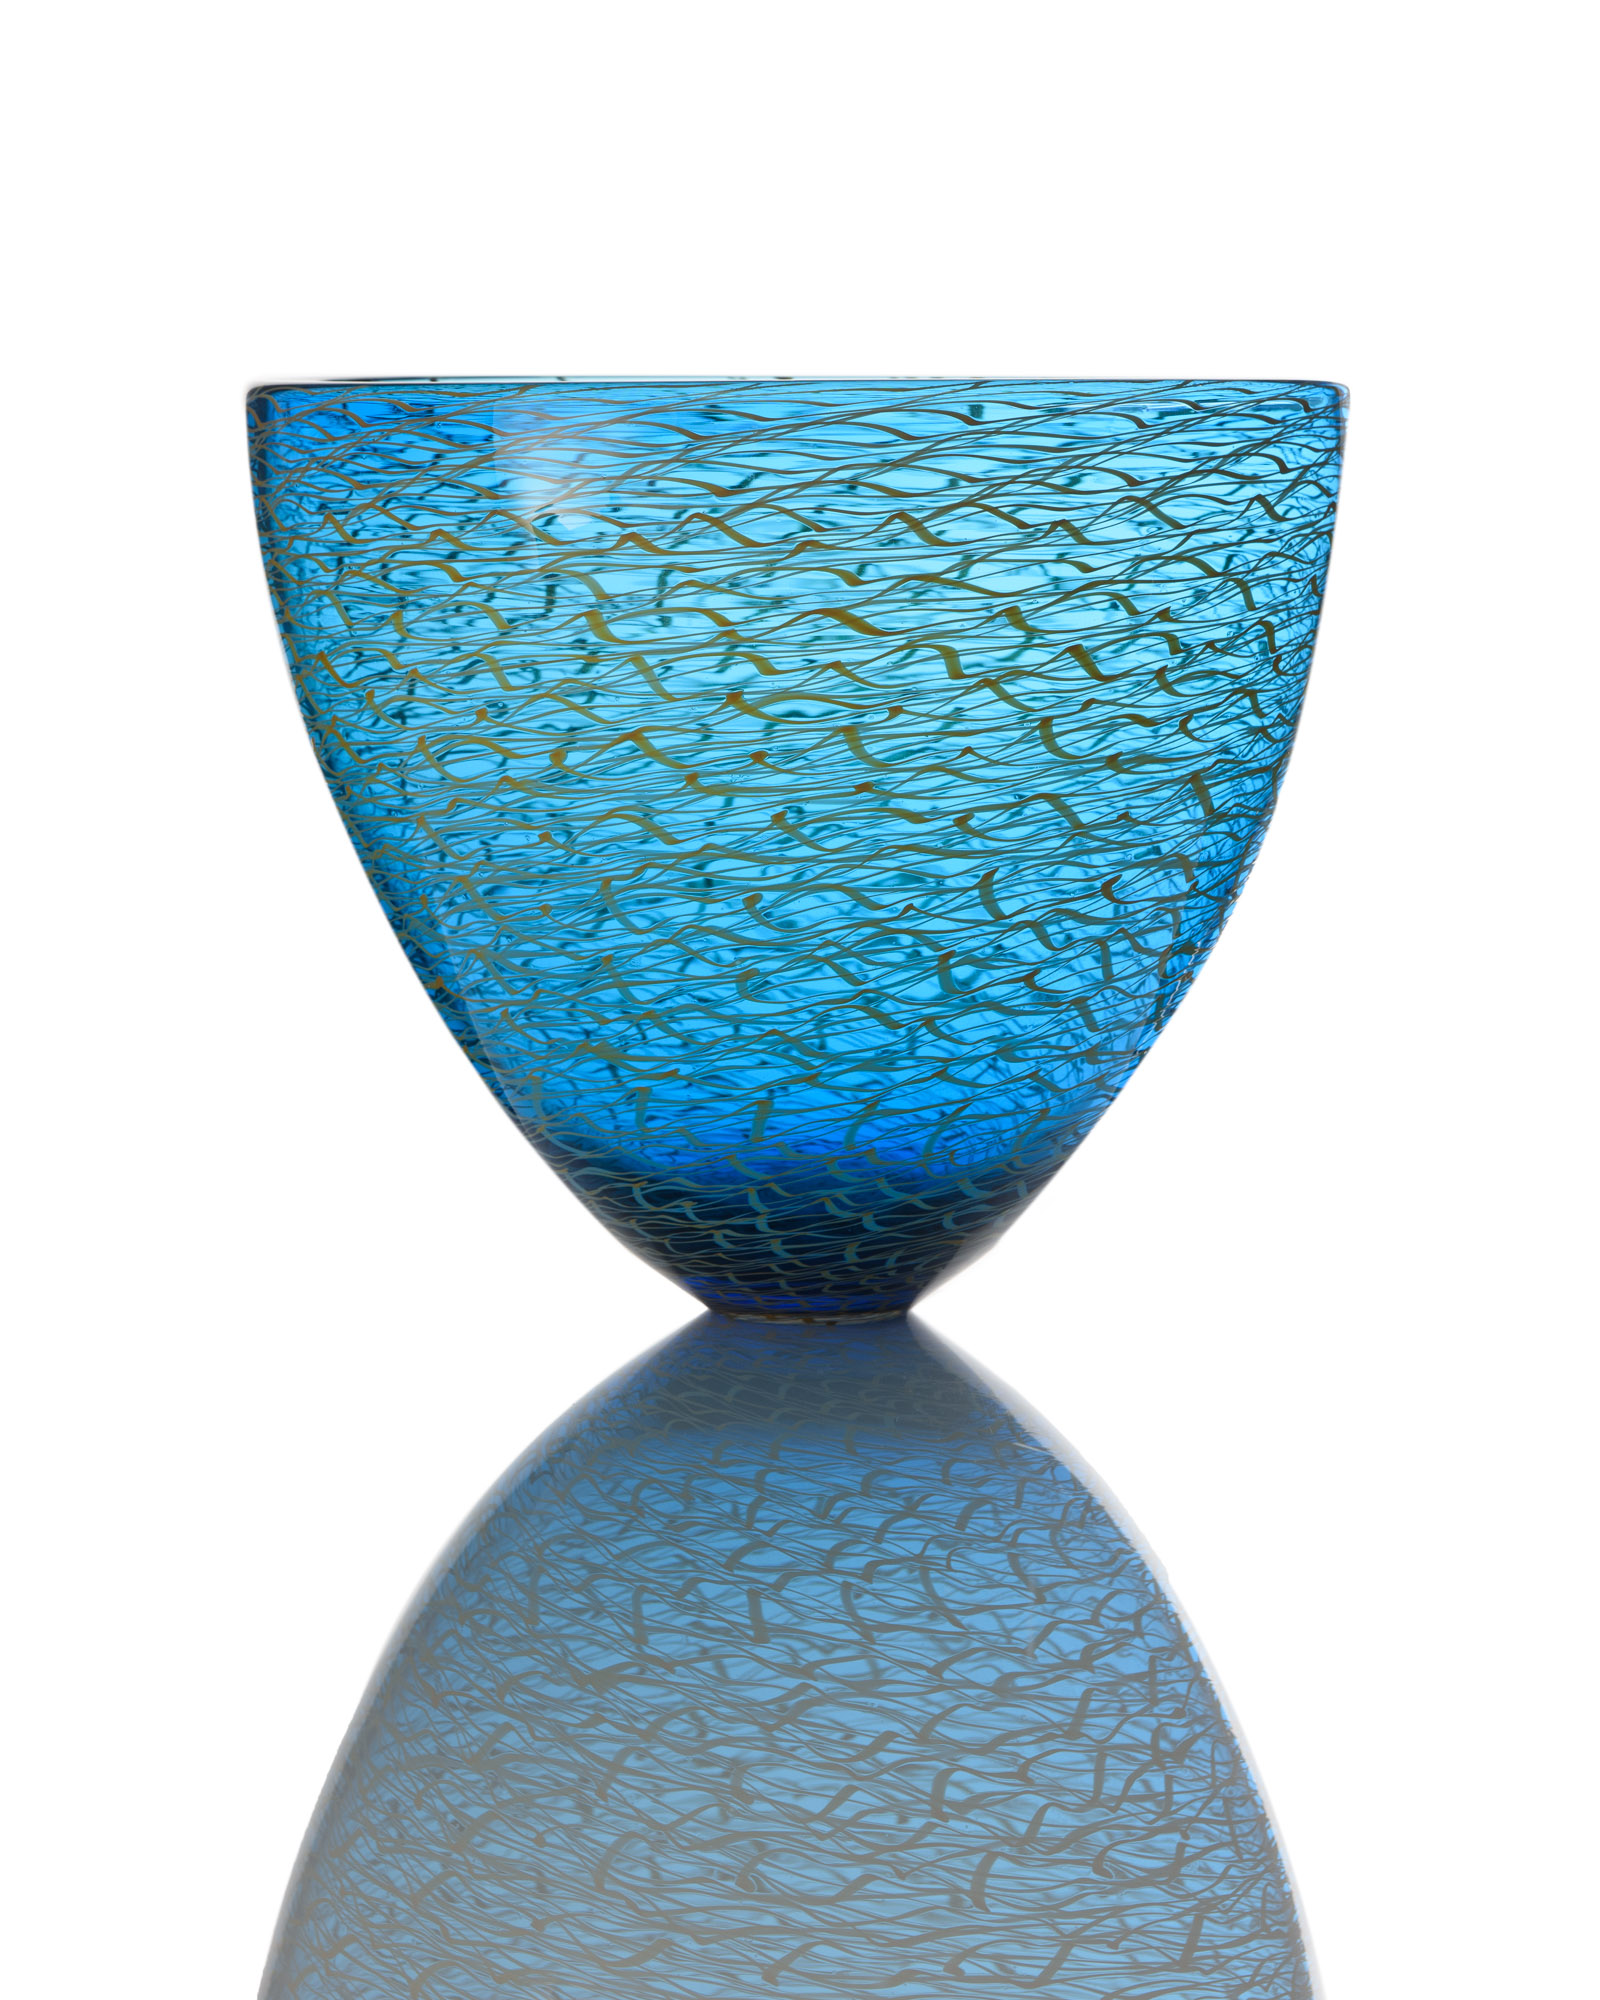 Marea Medium Bowl - Aquamarine Blue_Gold